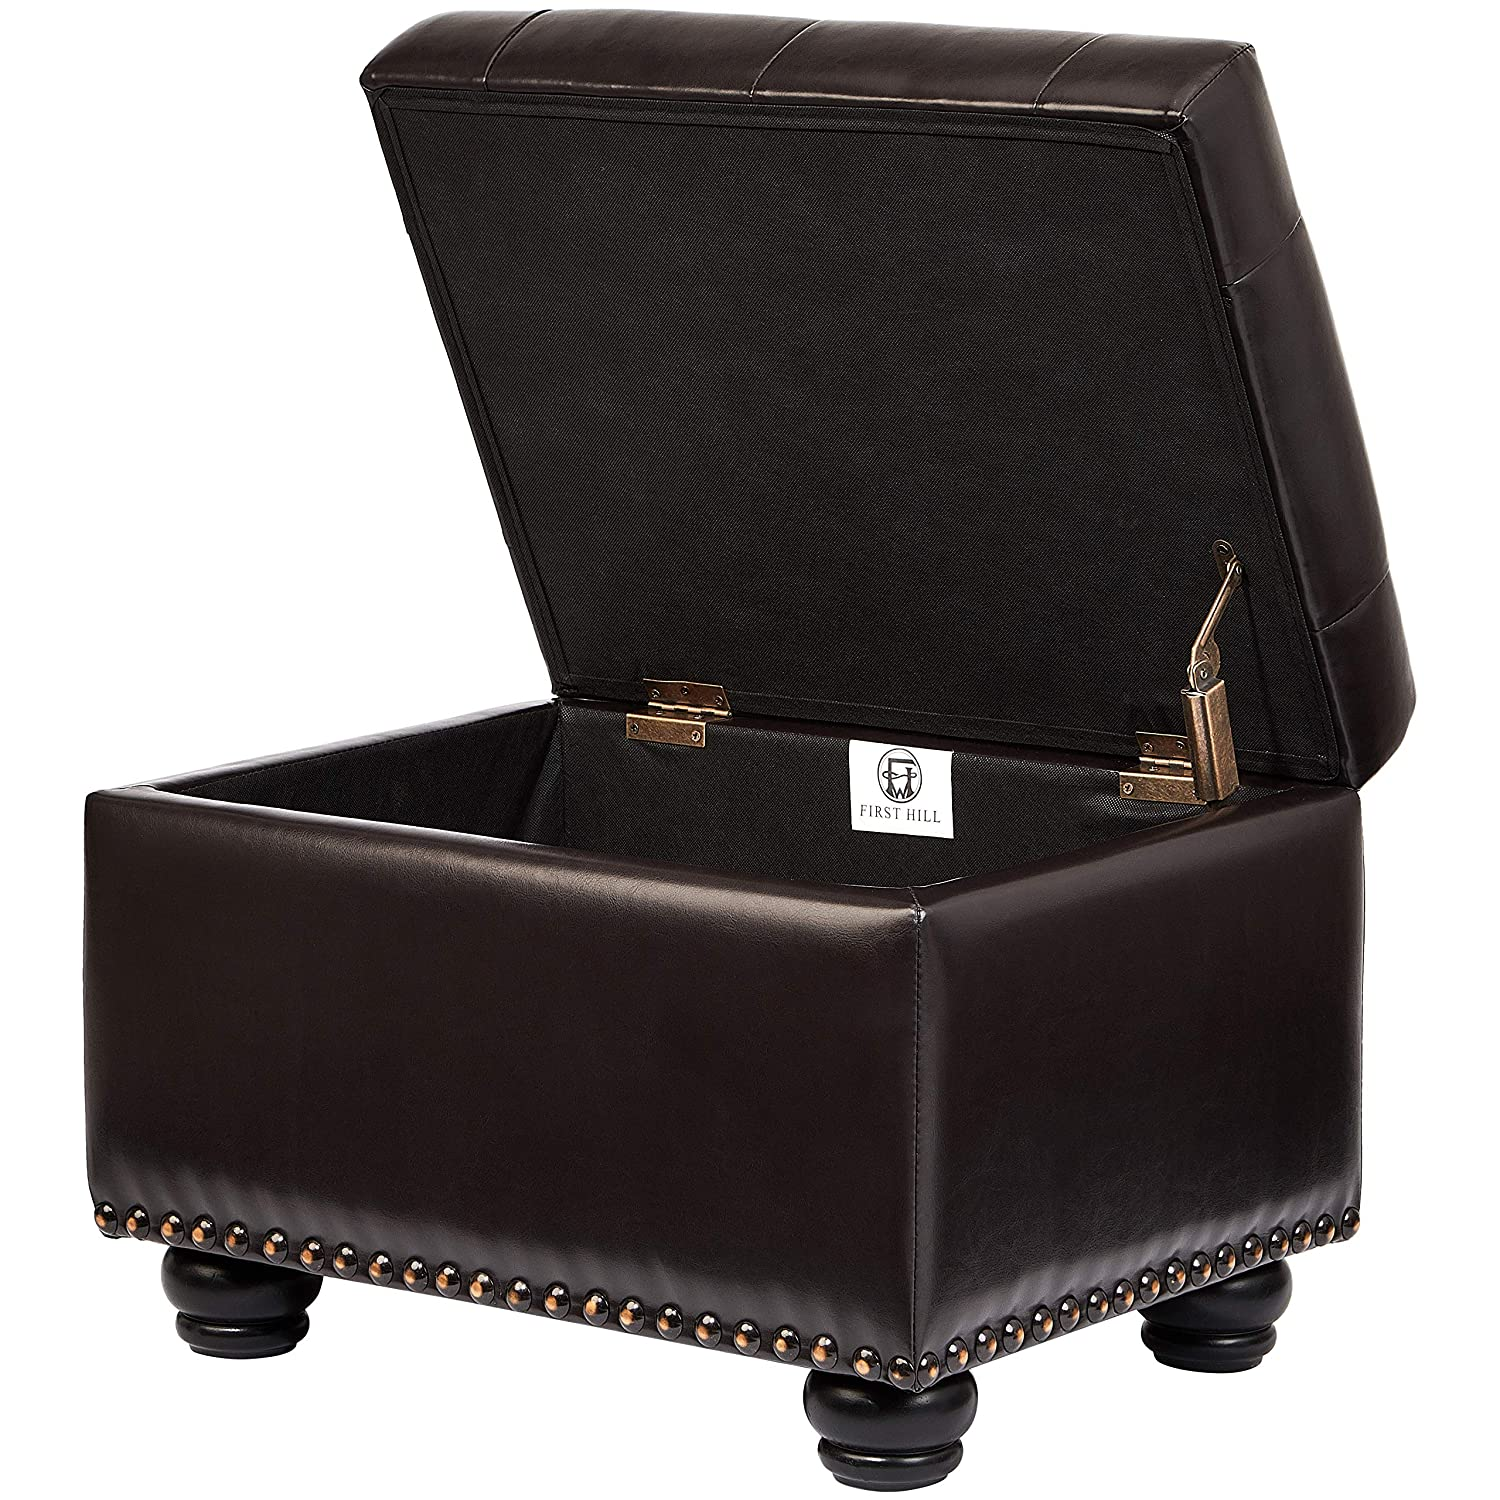 First Hill Callah Rectangular Faux-Leather Storage Ottoman with Tufted Design Monday Espresso